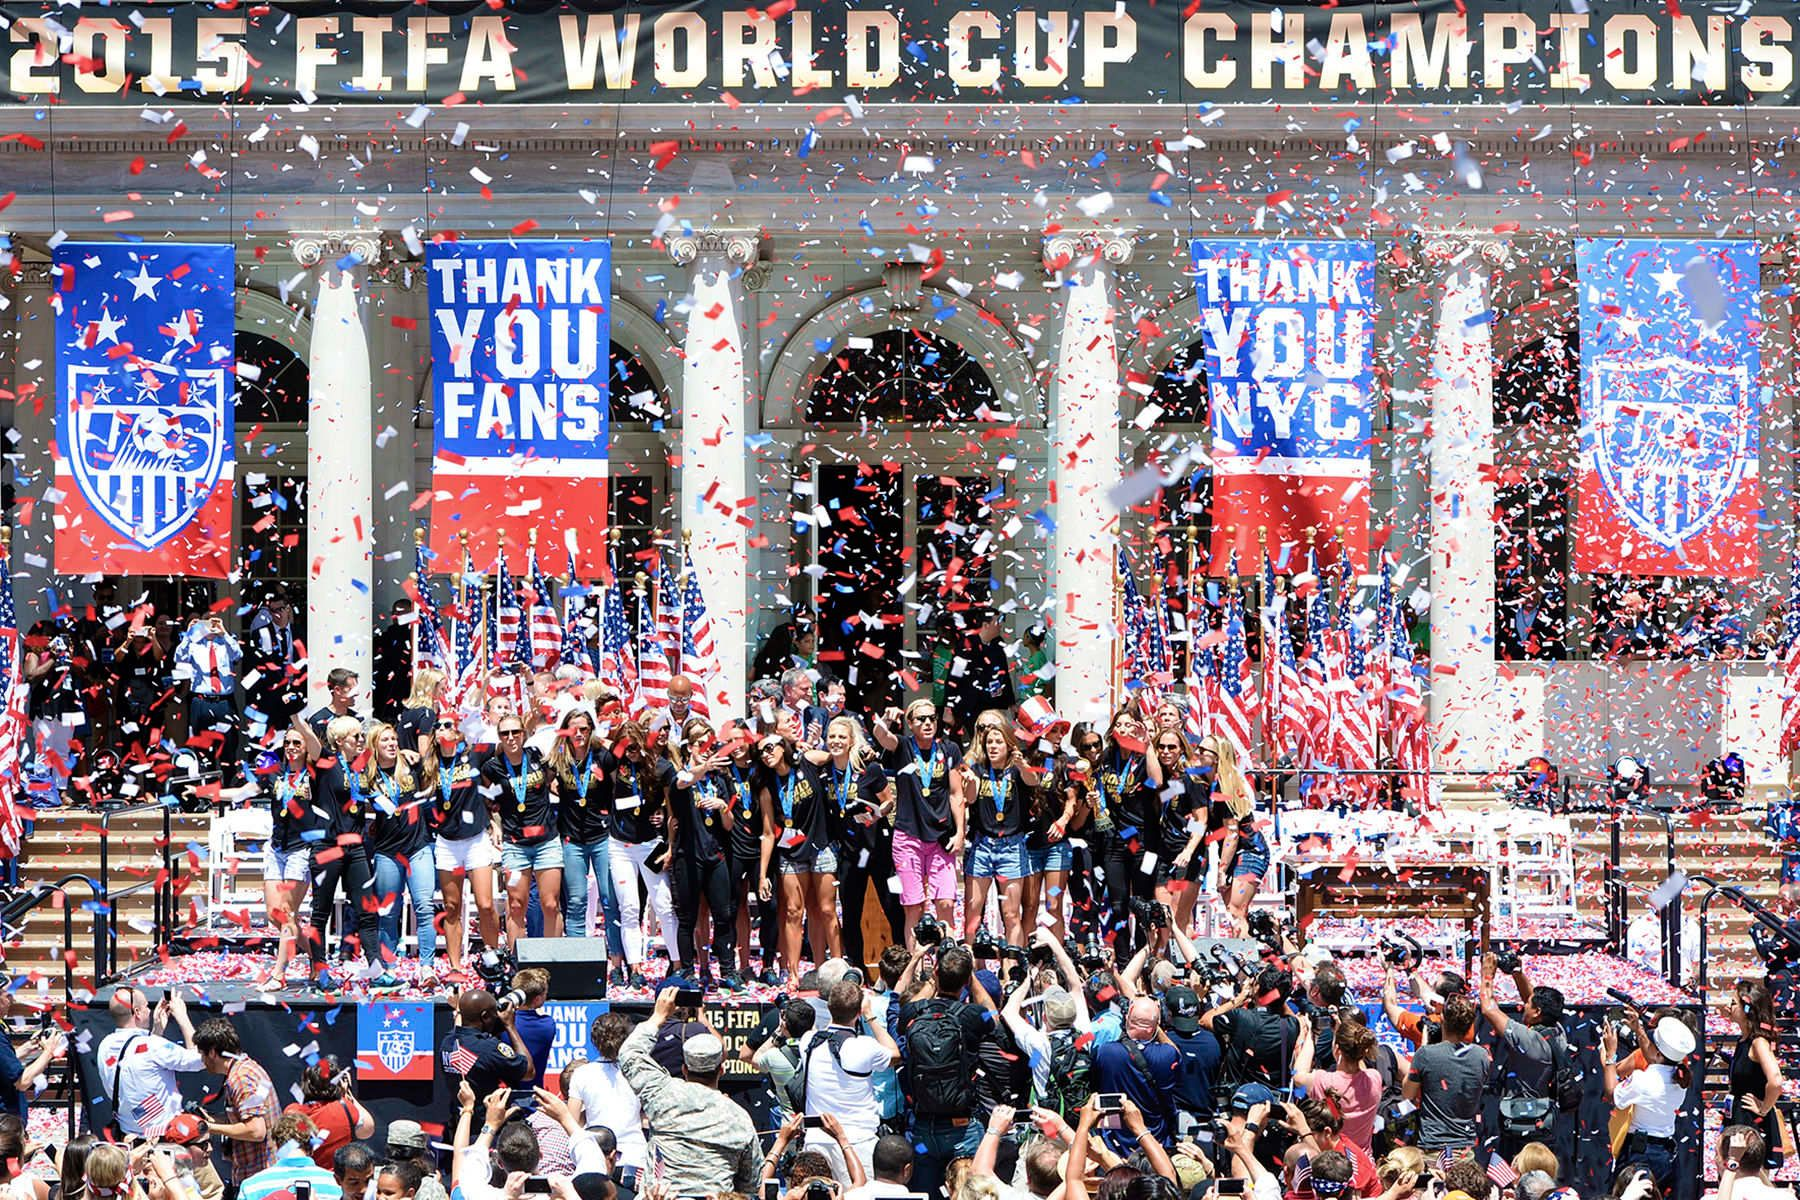 2015 FIFA Women's World Cup Champion U.S. Women's National Team.